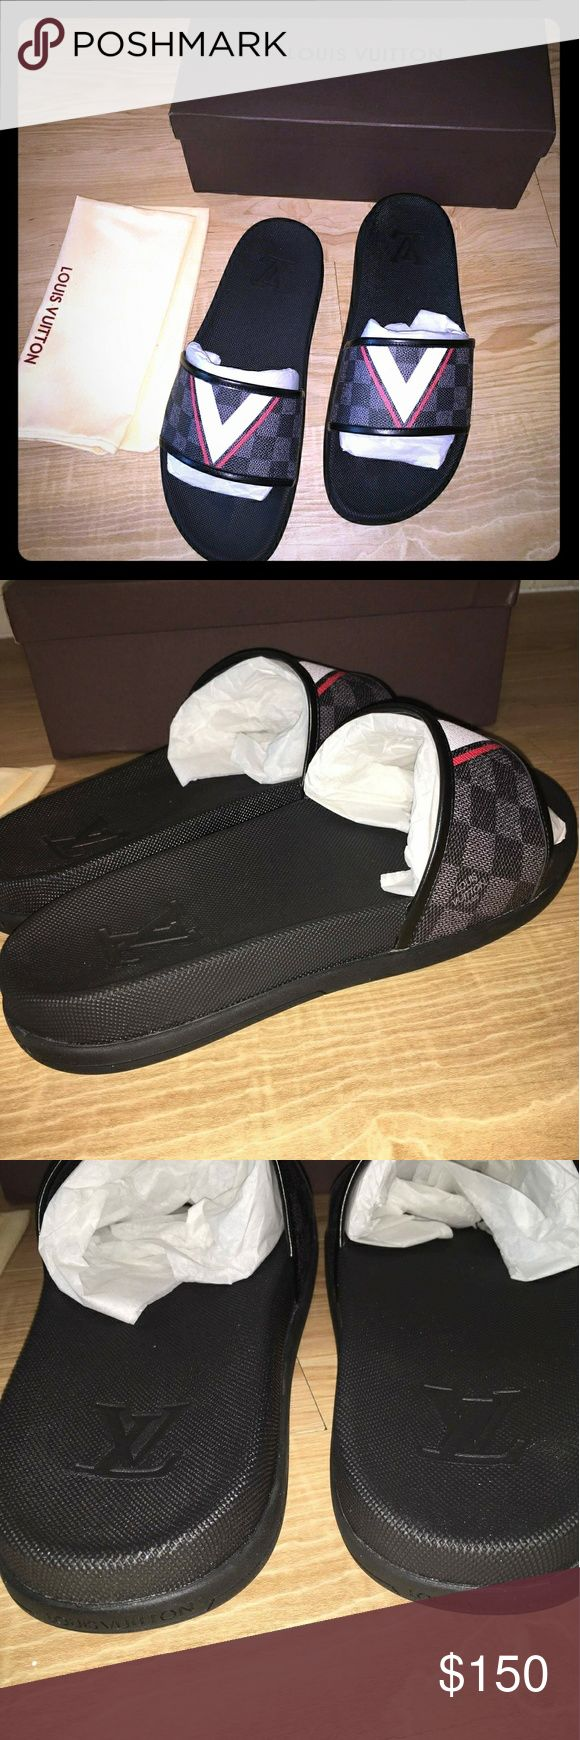 Louis Vuitton Slippers New With Box Men Size 95 Women Size 11 Fast 23